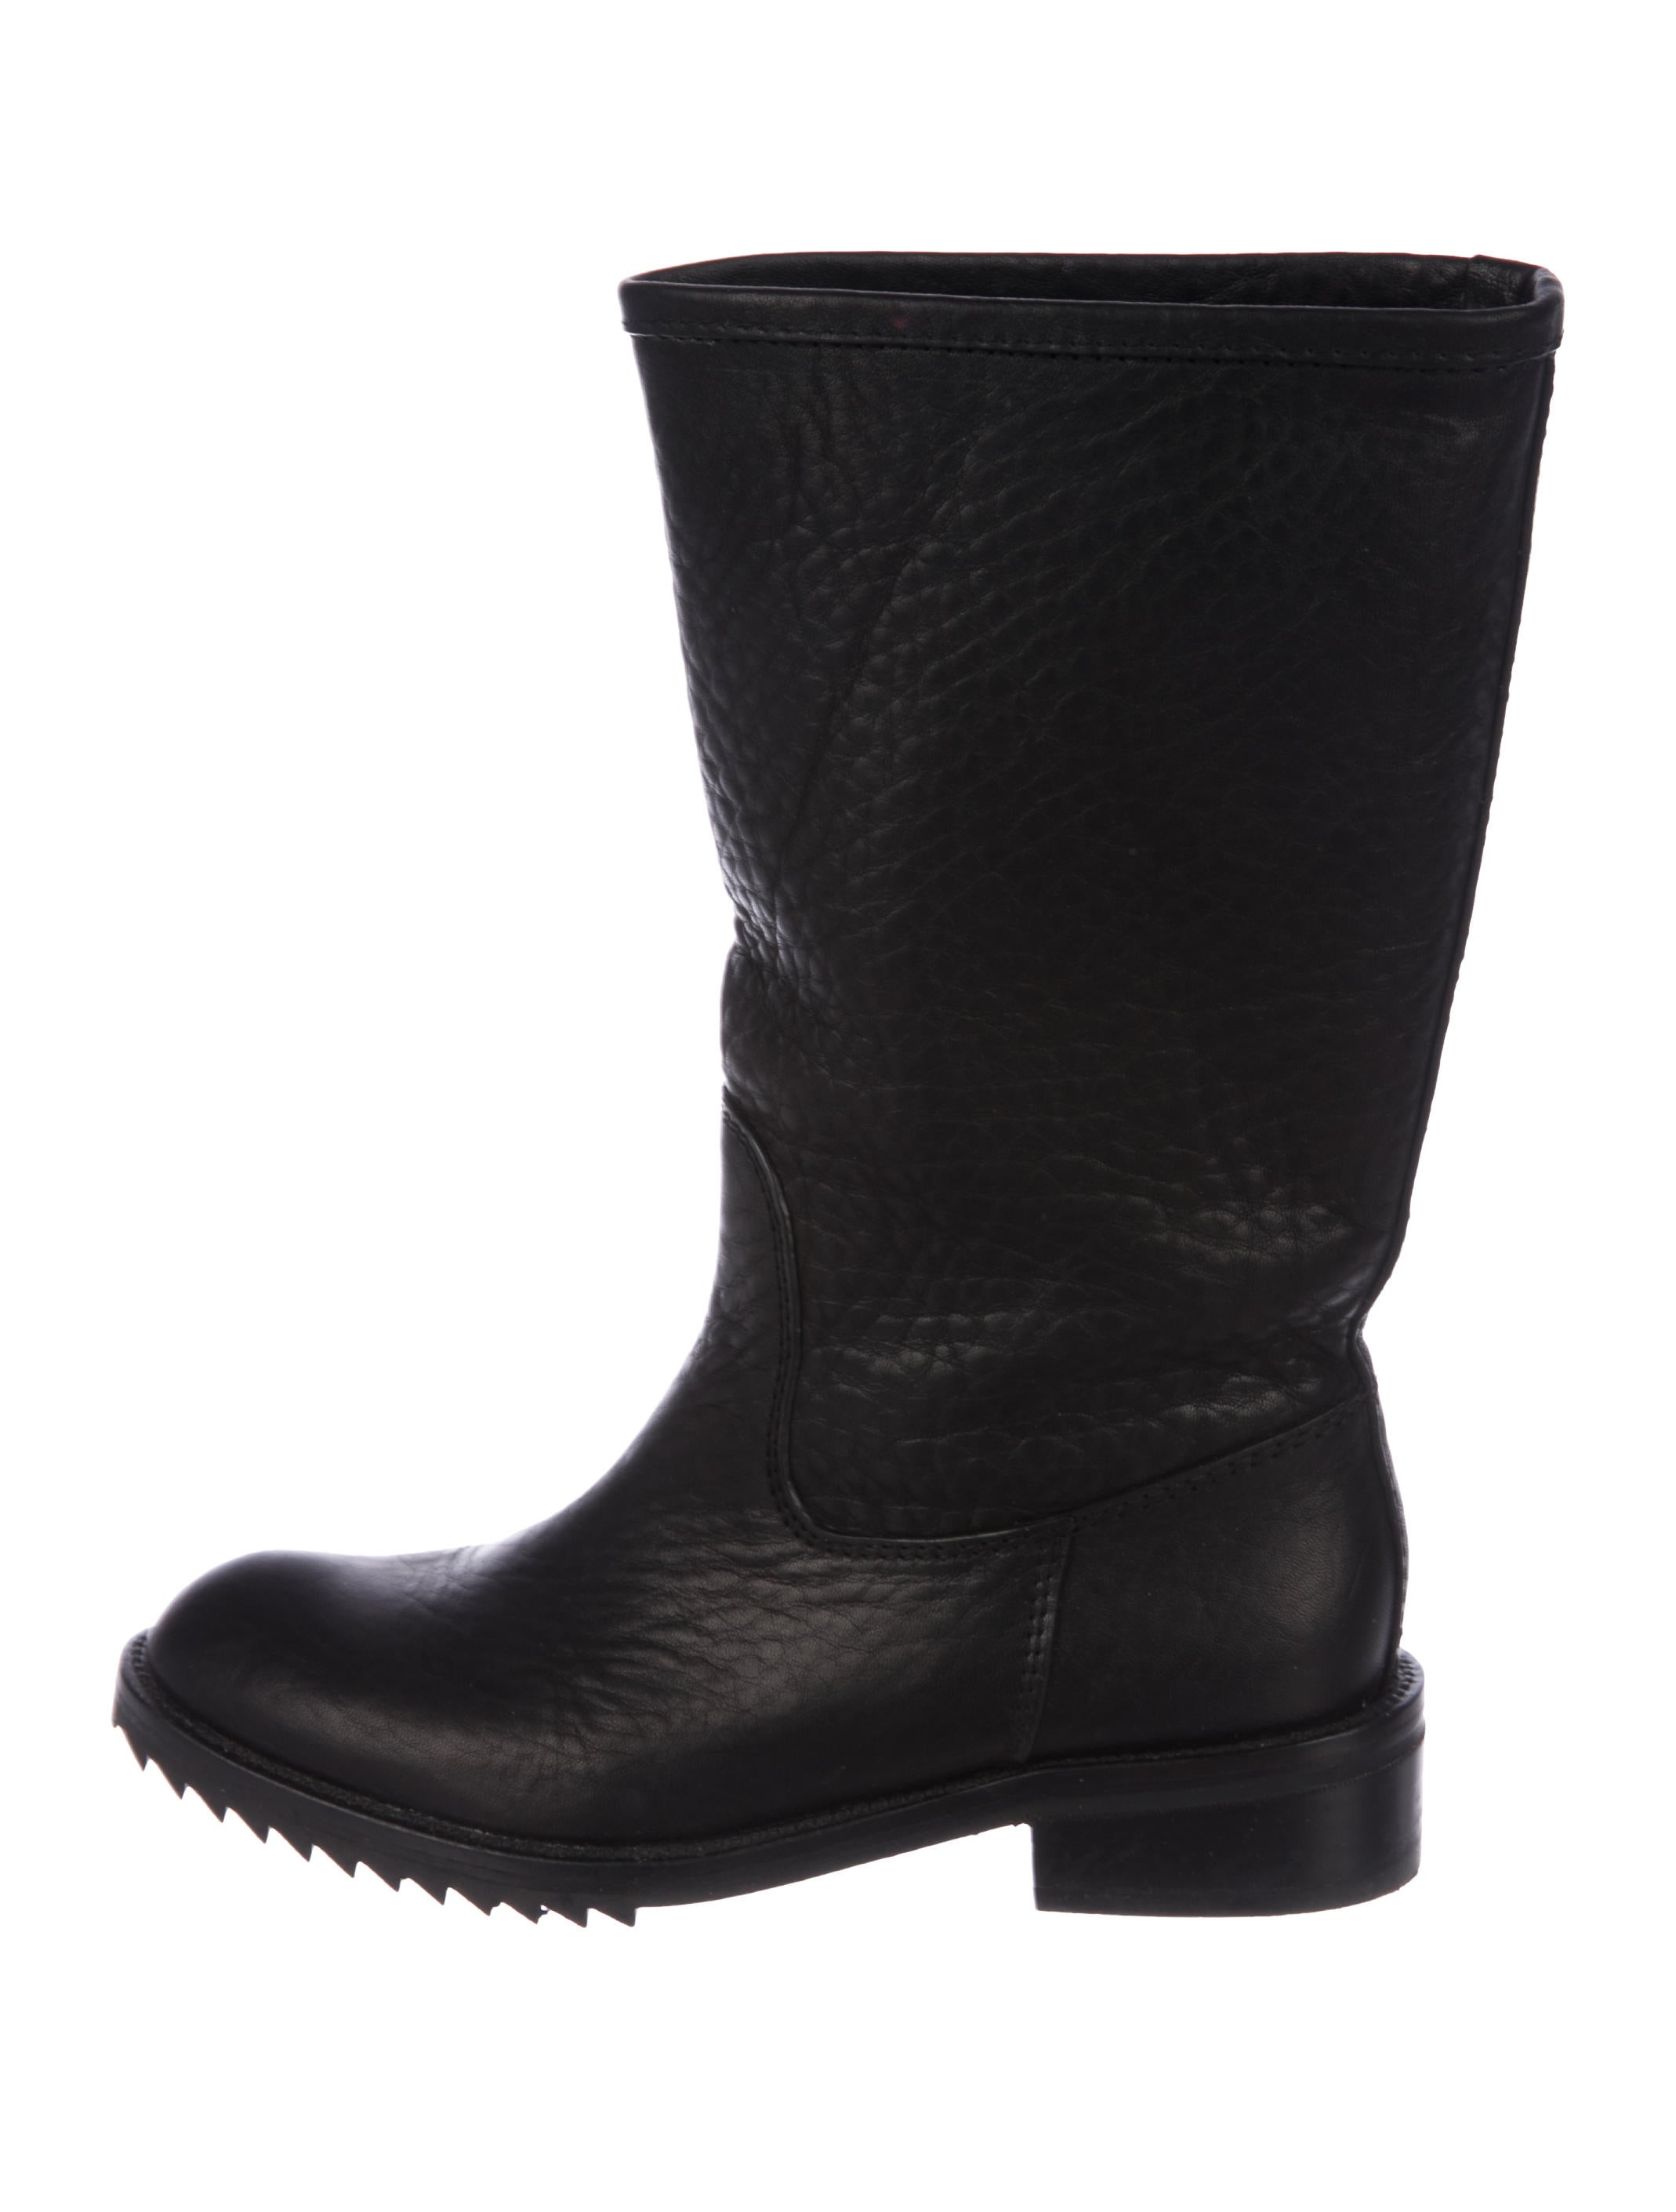 countdown package cheap online Pedro Garcia Oprah Mid-Calf Boots cheap sale recommend store sale discount new styles UMVP2S